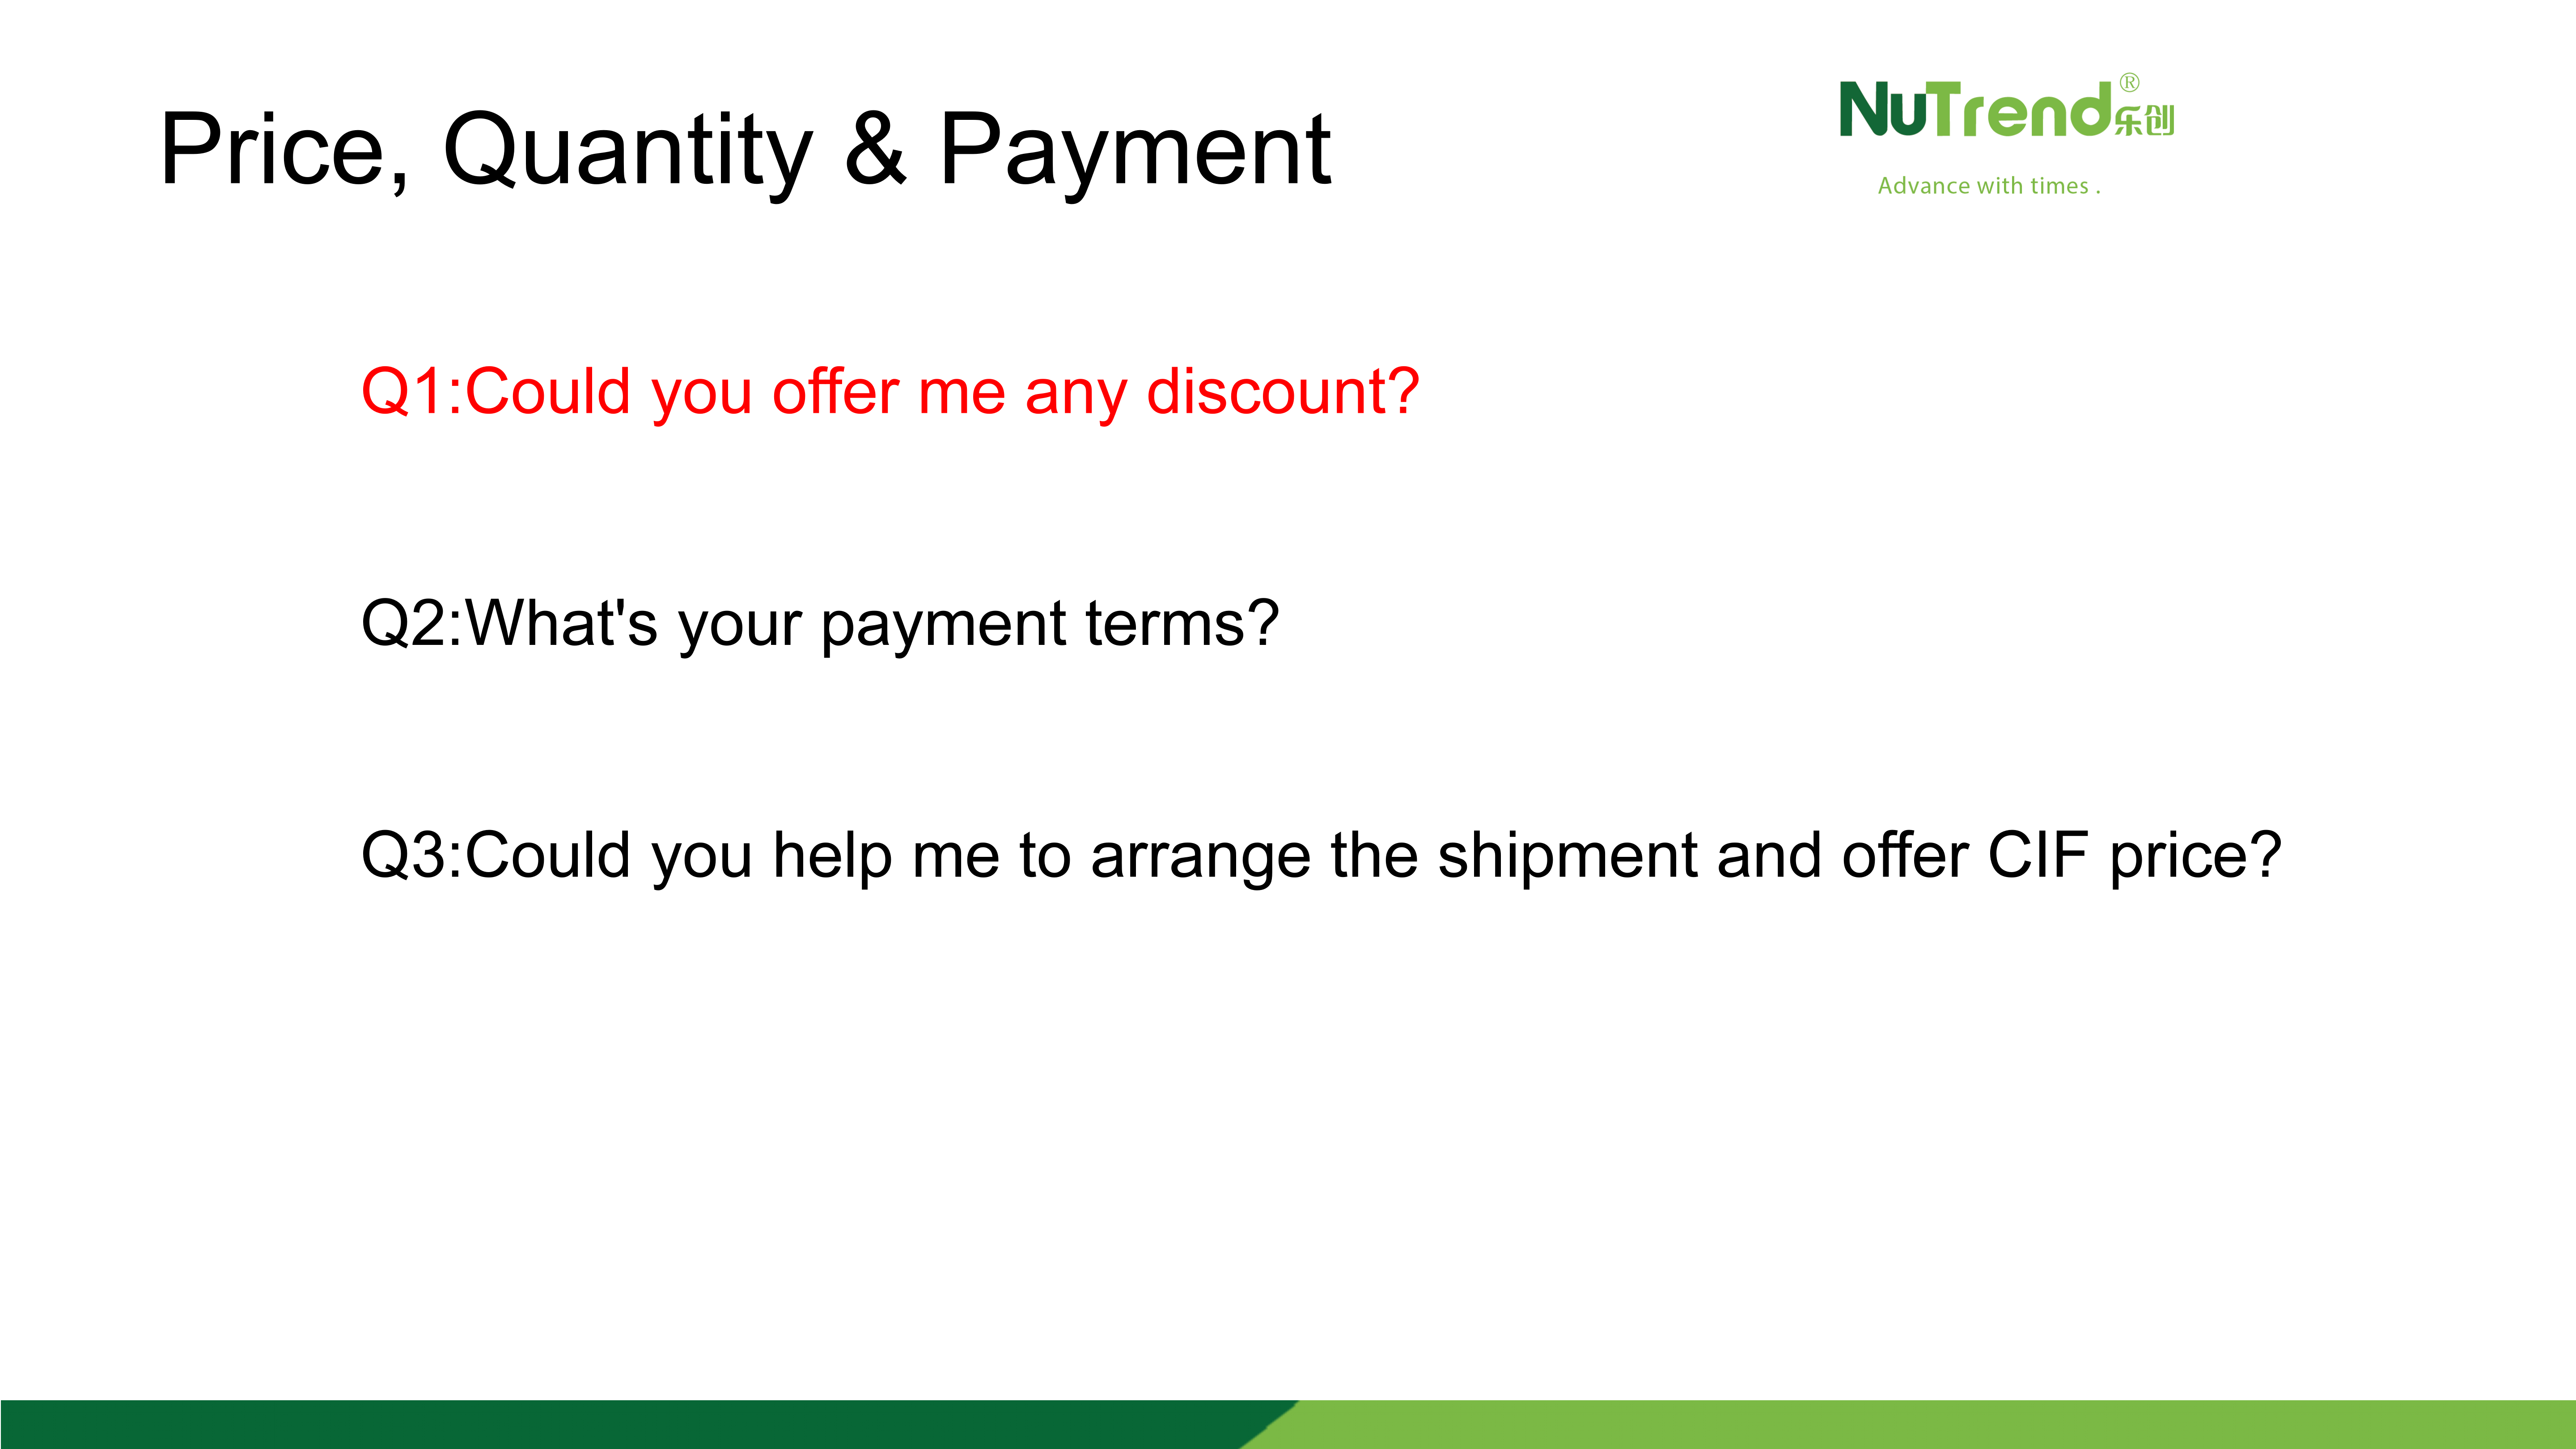 About Payment Terms